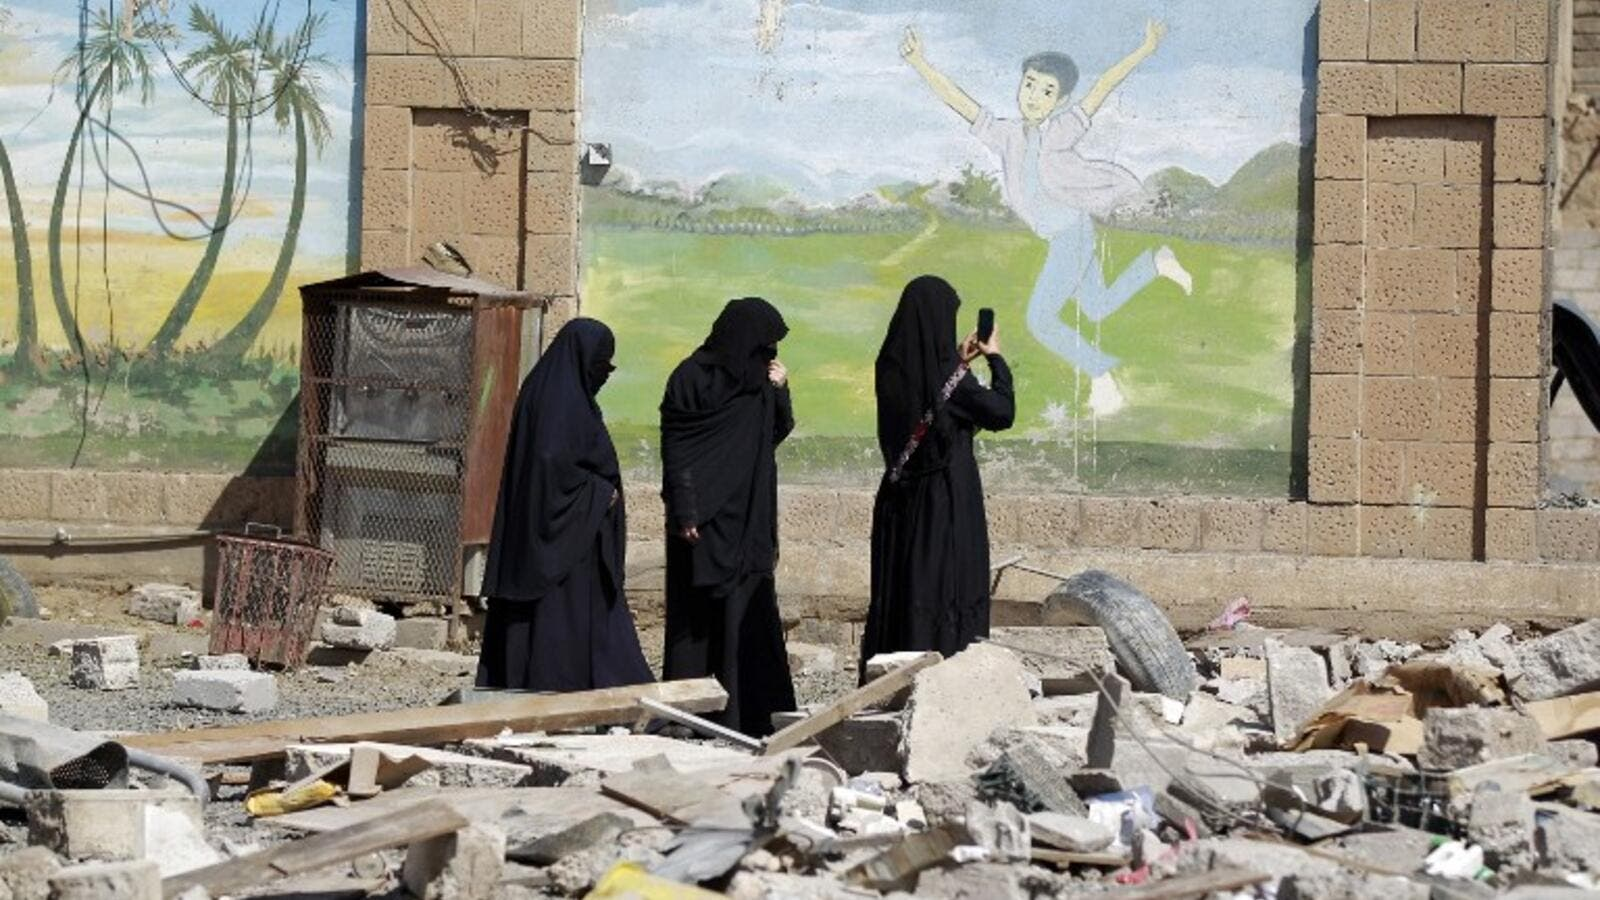 Yemeni women at the scene of an airstrike, March 18 (AFP)